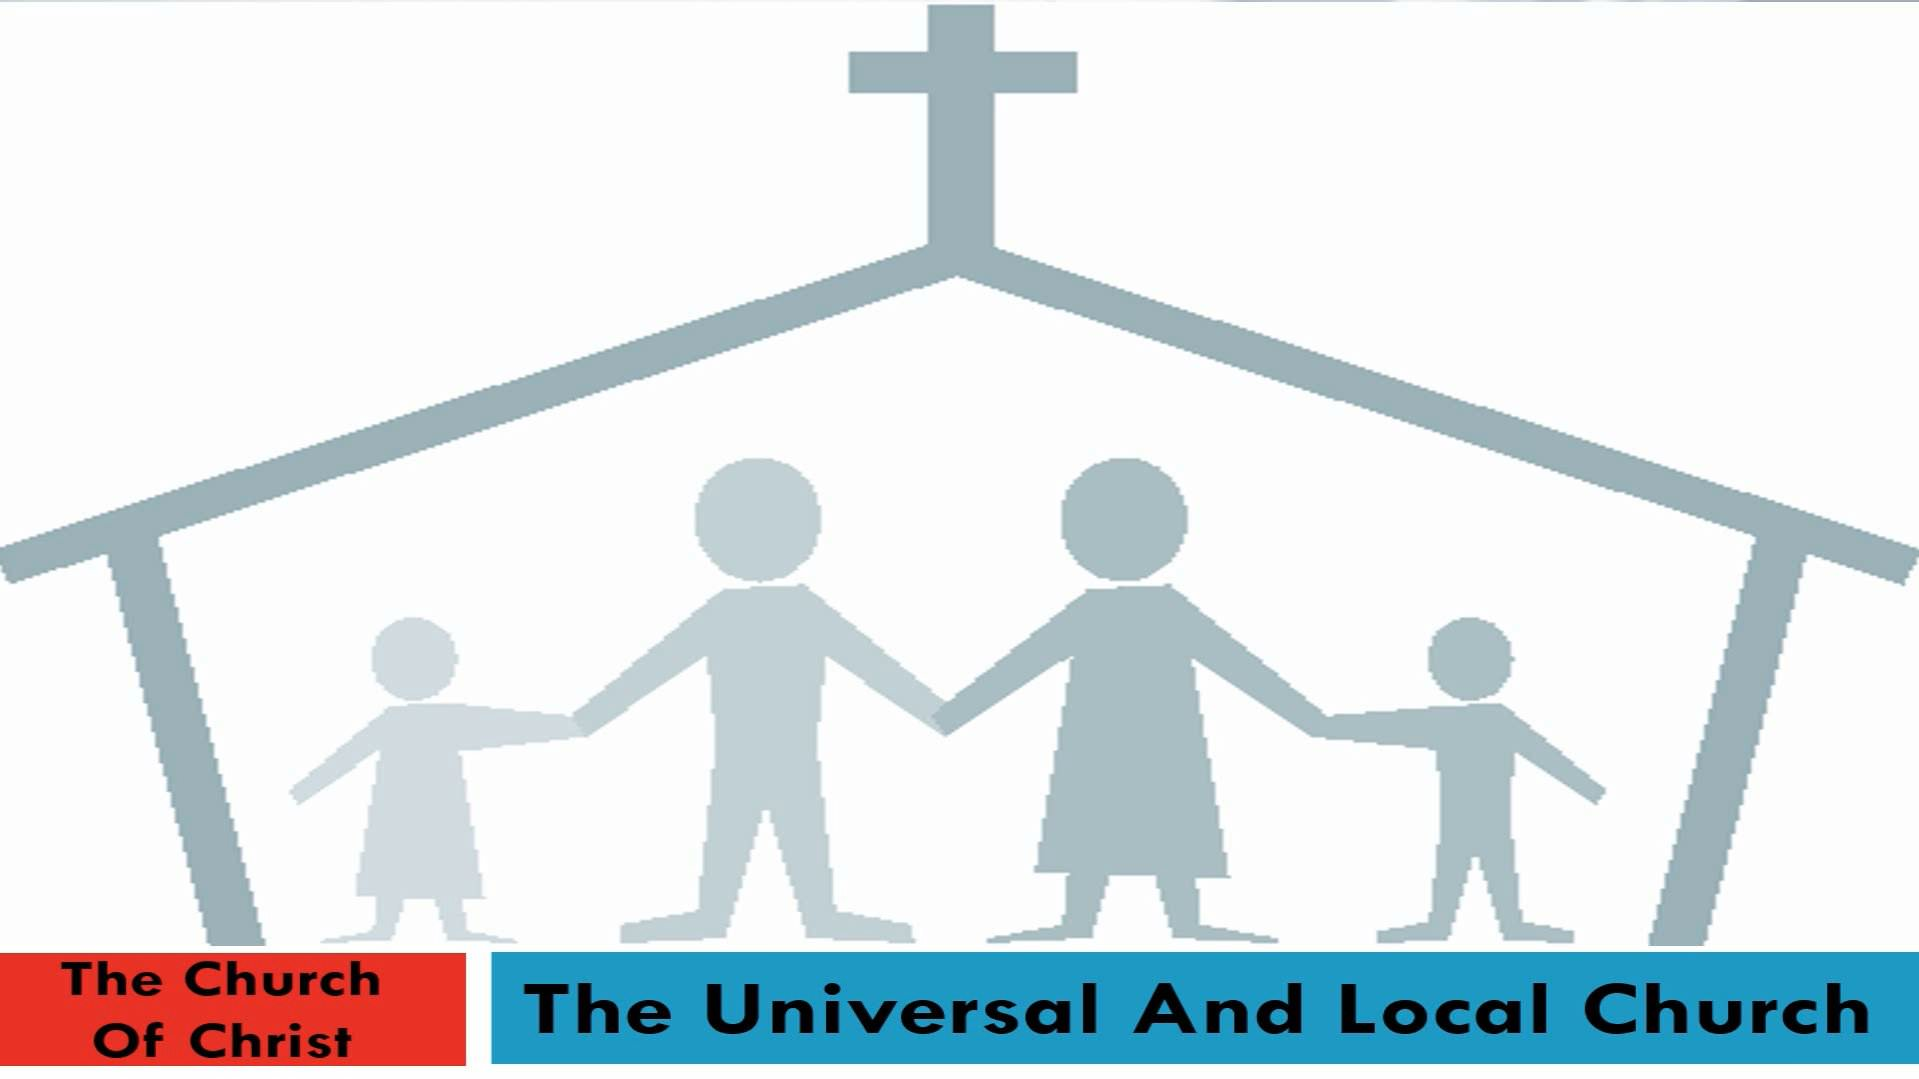 The Church Of Christ (Lesson 5:  The Universal And Local Church)